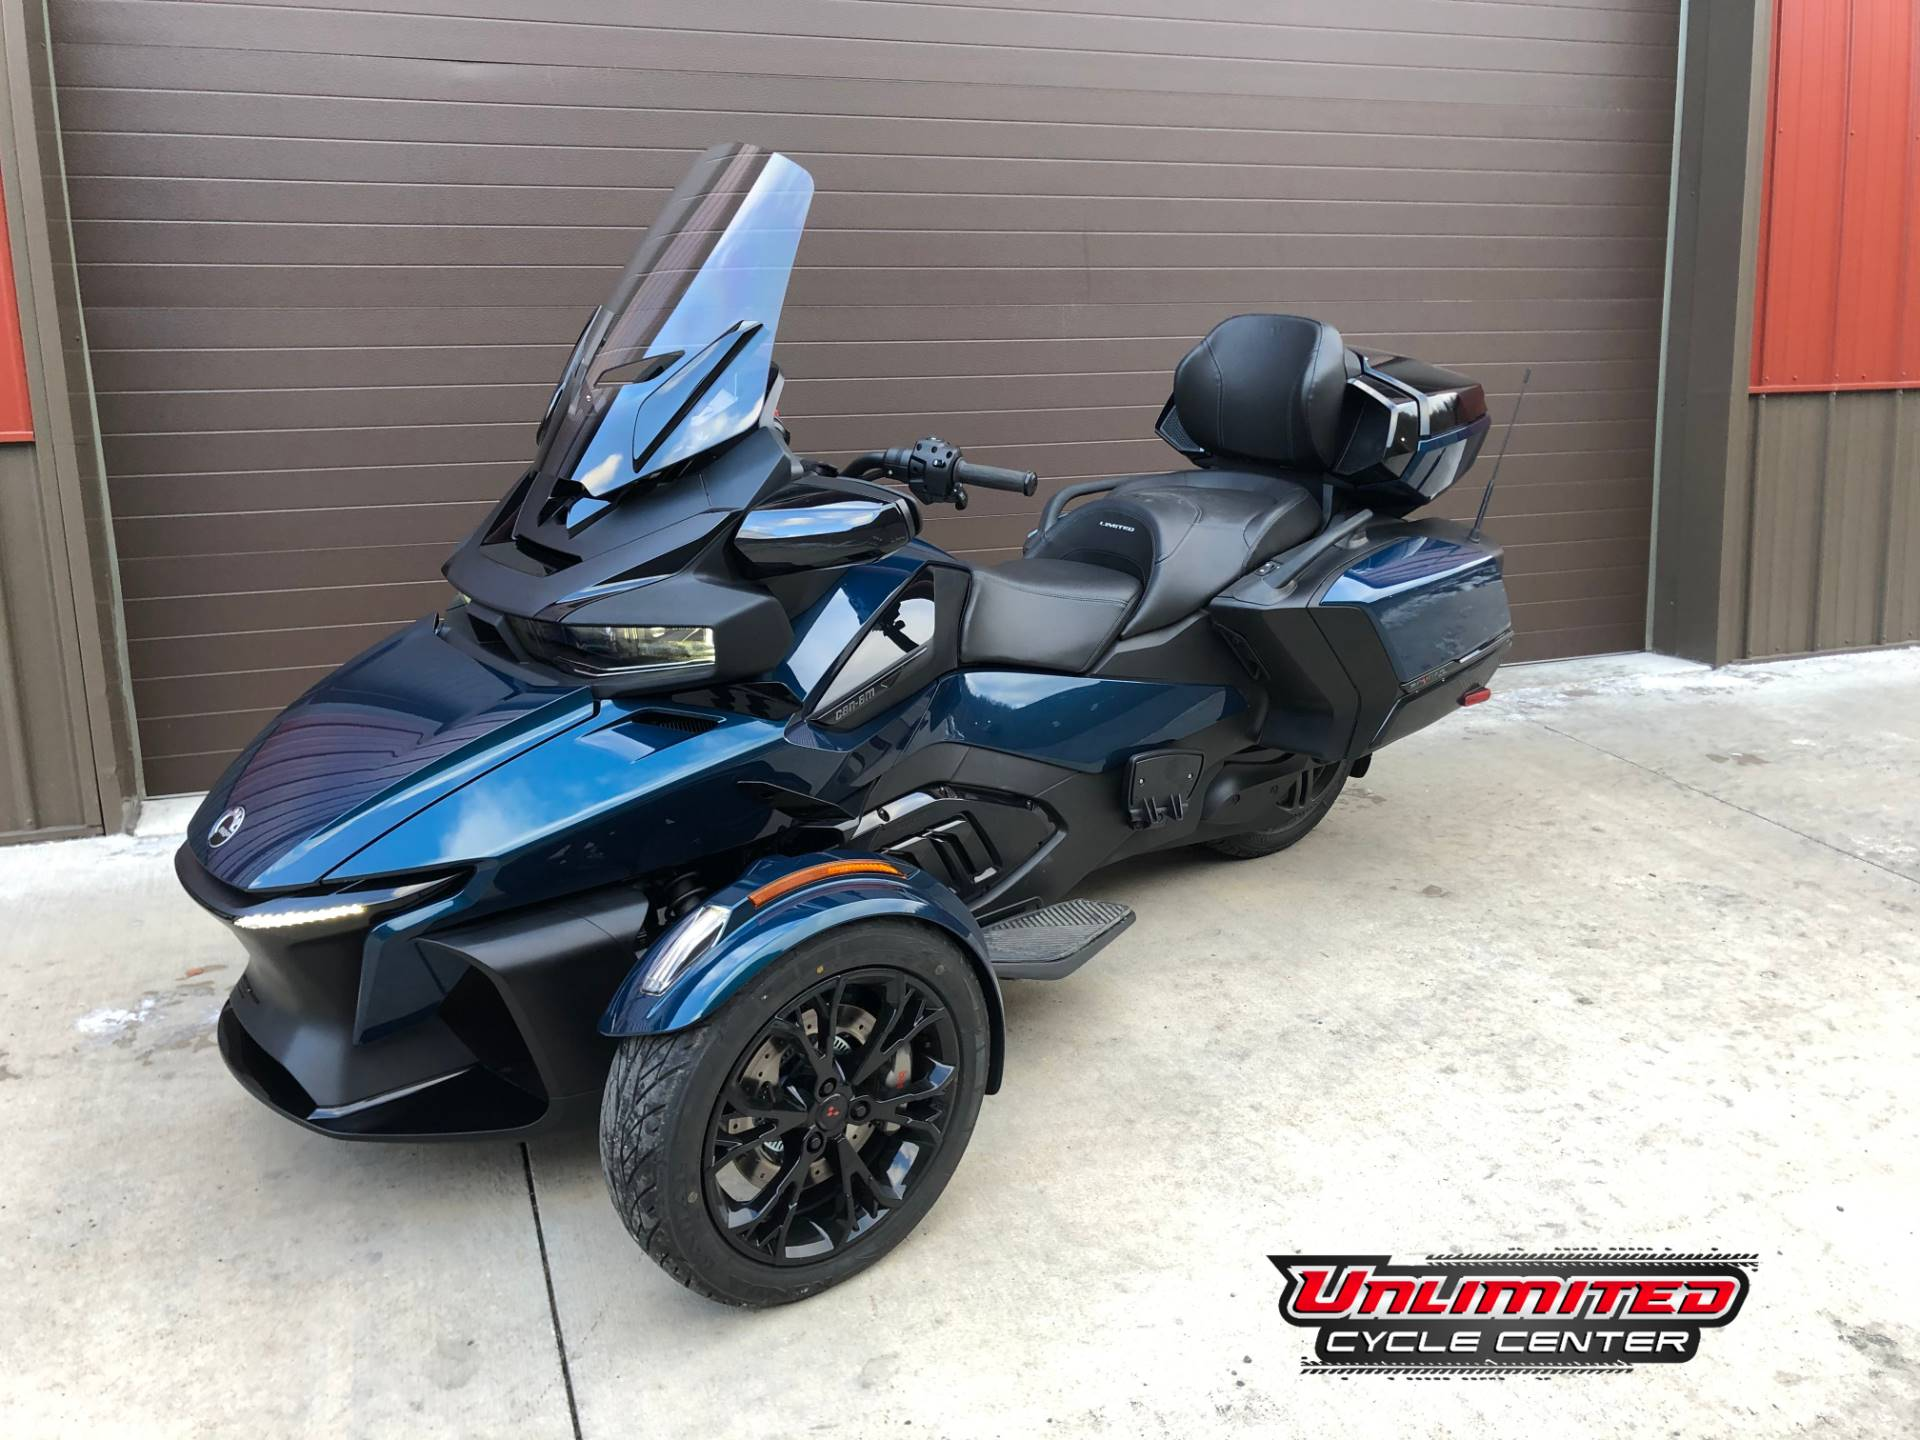 2021 Can-Am SPYDER RT LTD in Tyrone, Pennsylvania - Photo 1